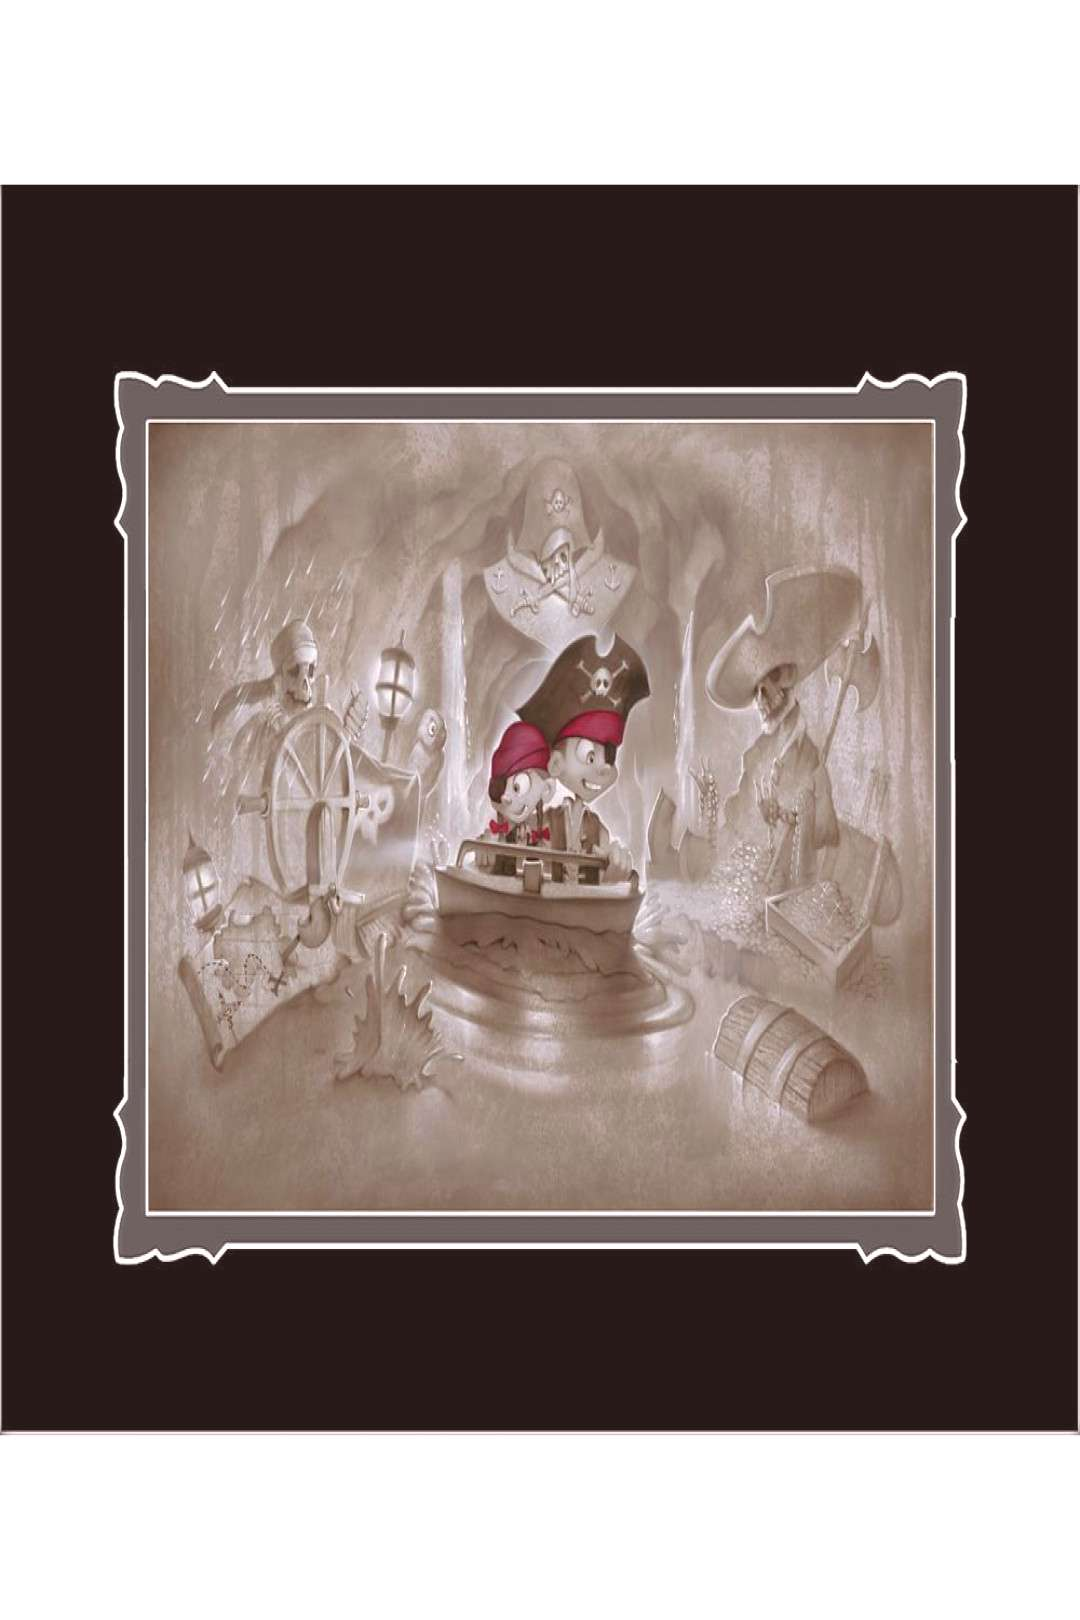 Pirates of the Caribbean Thar Be Pirates in These Parts Deluxe Print by Noah shopDisney